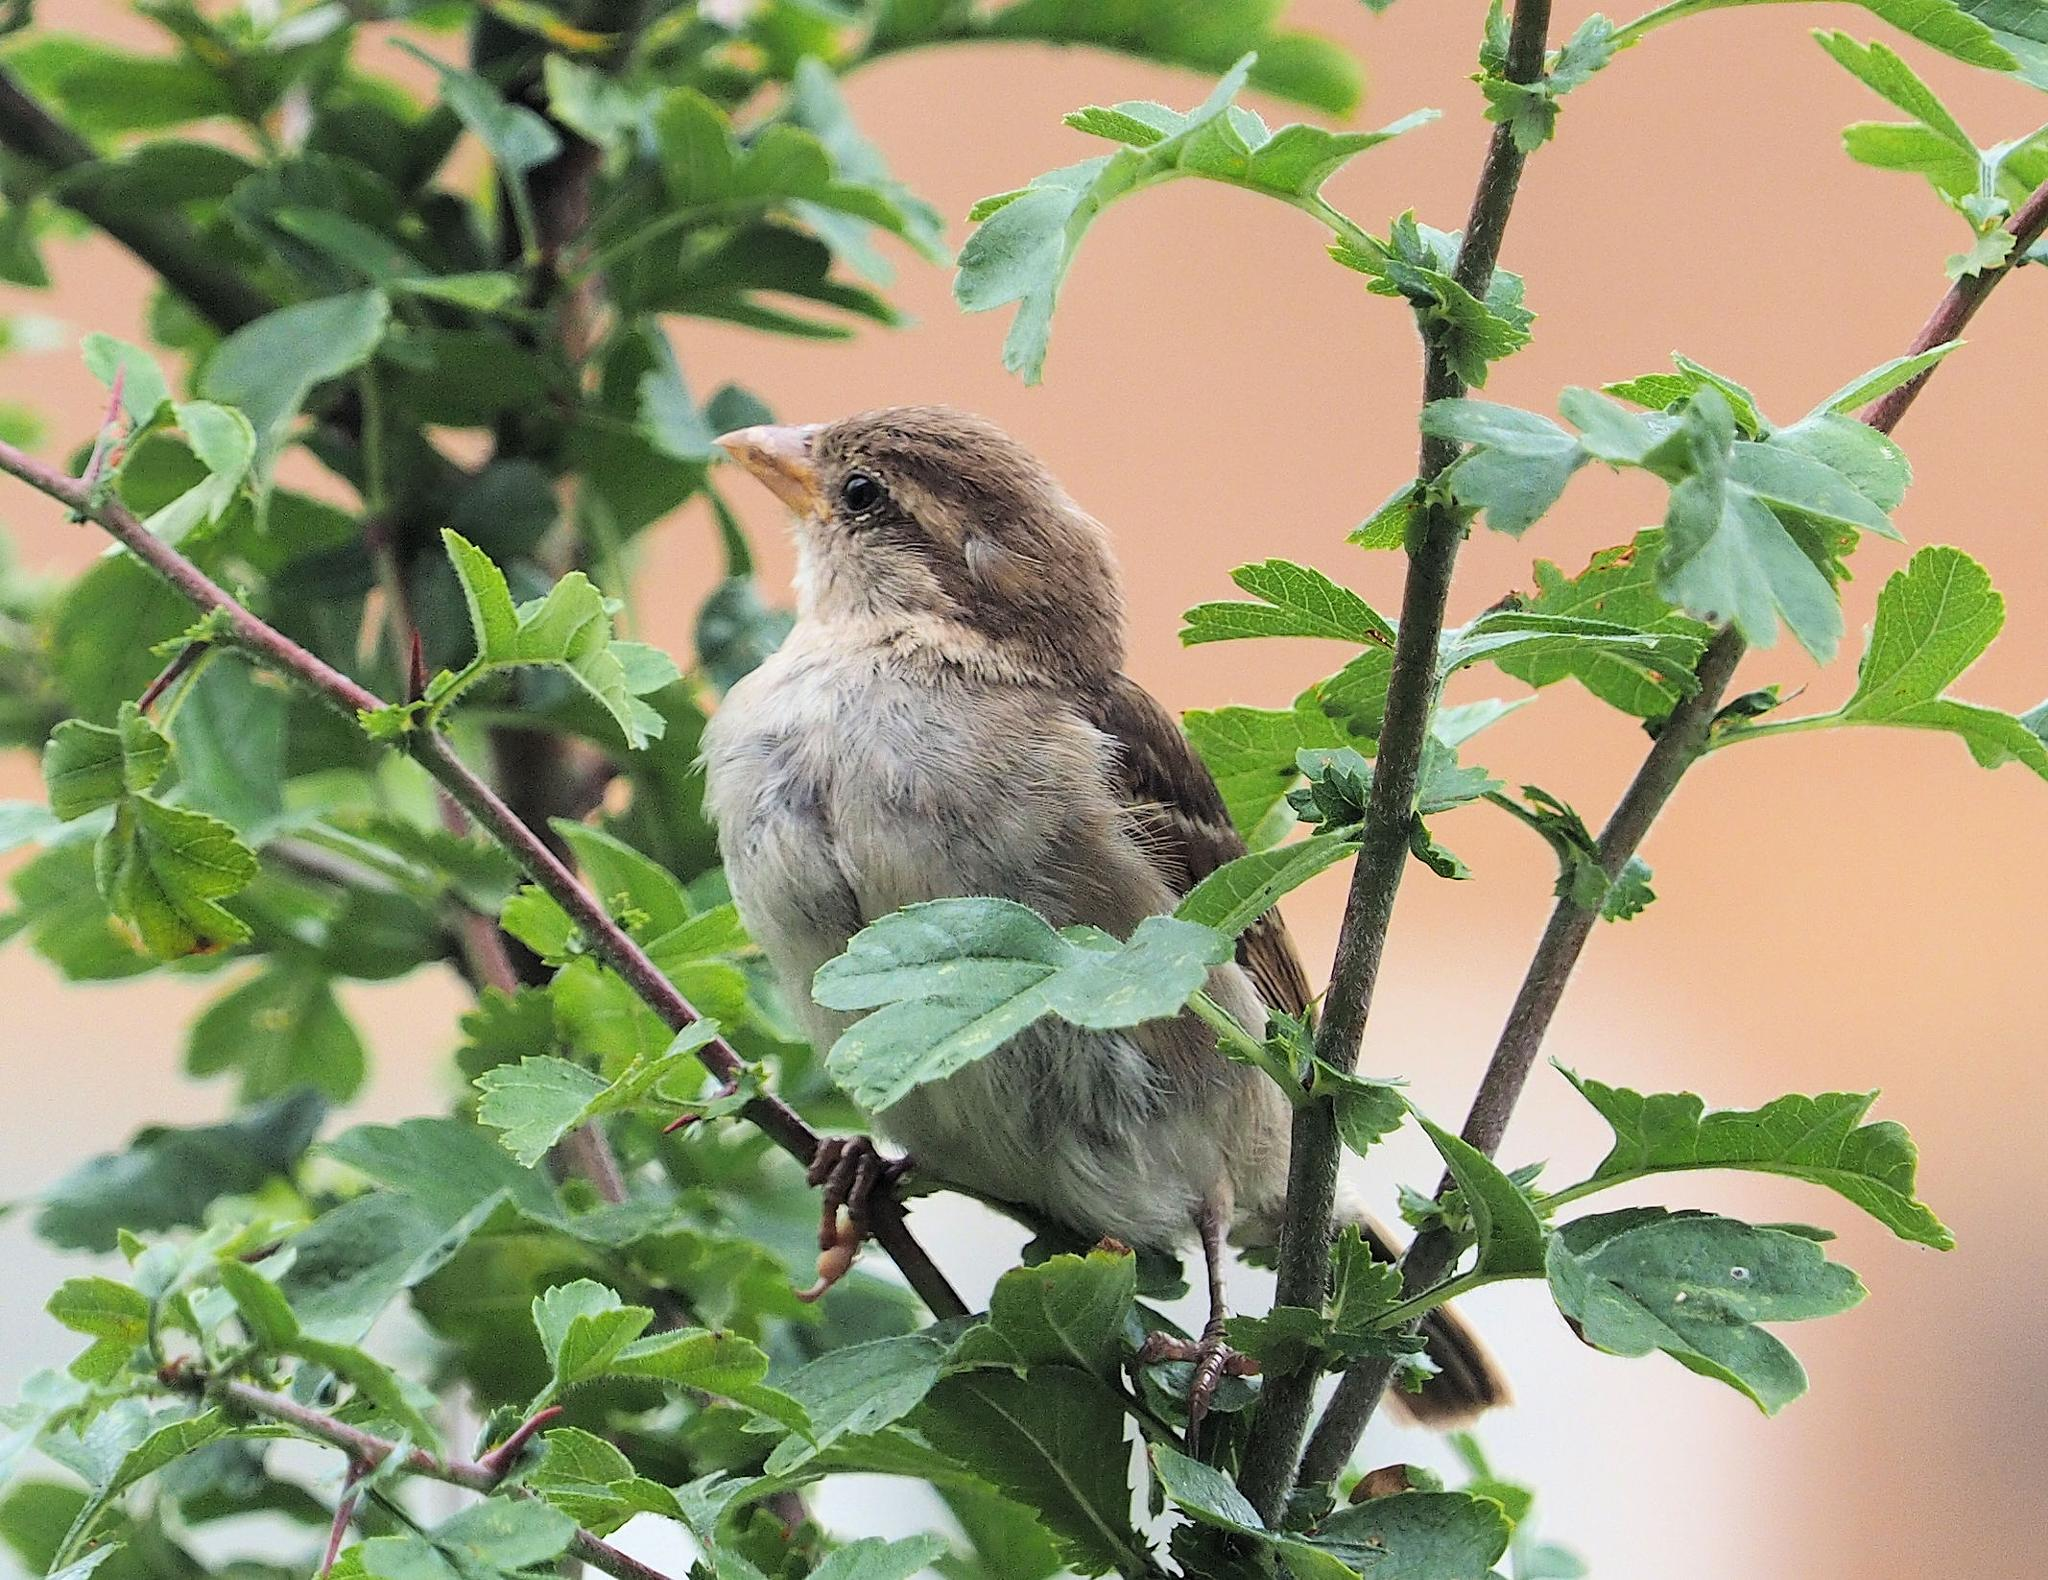 Female Sparrow in the bushes by martin.b.hollands